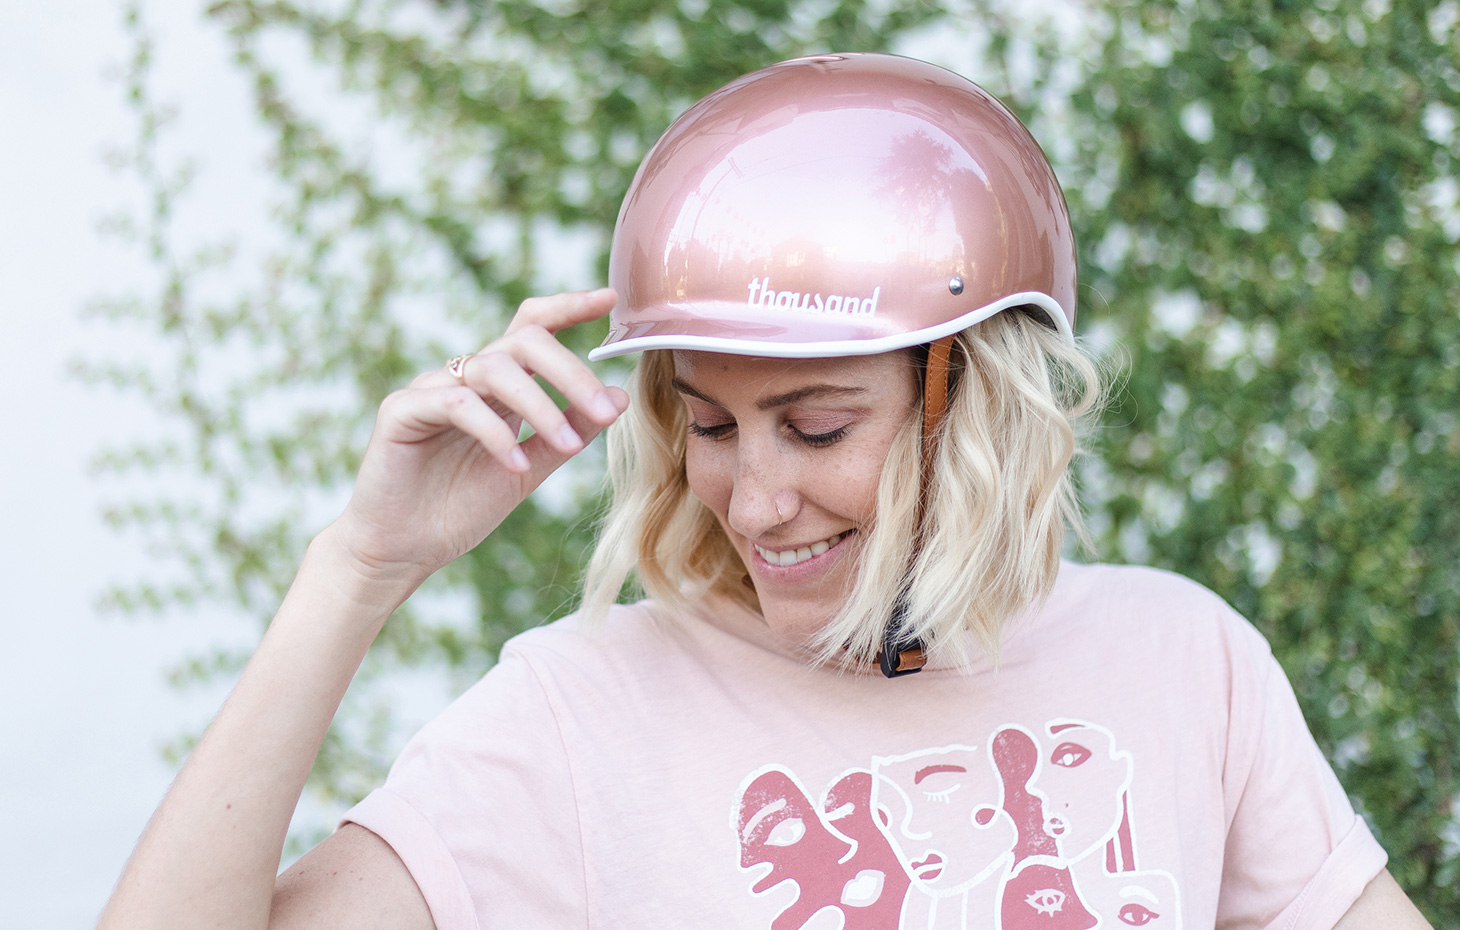 Dani Nagel wearing Rose Gold bike helmet